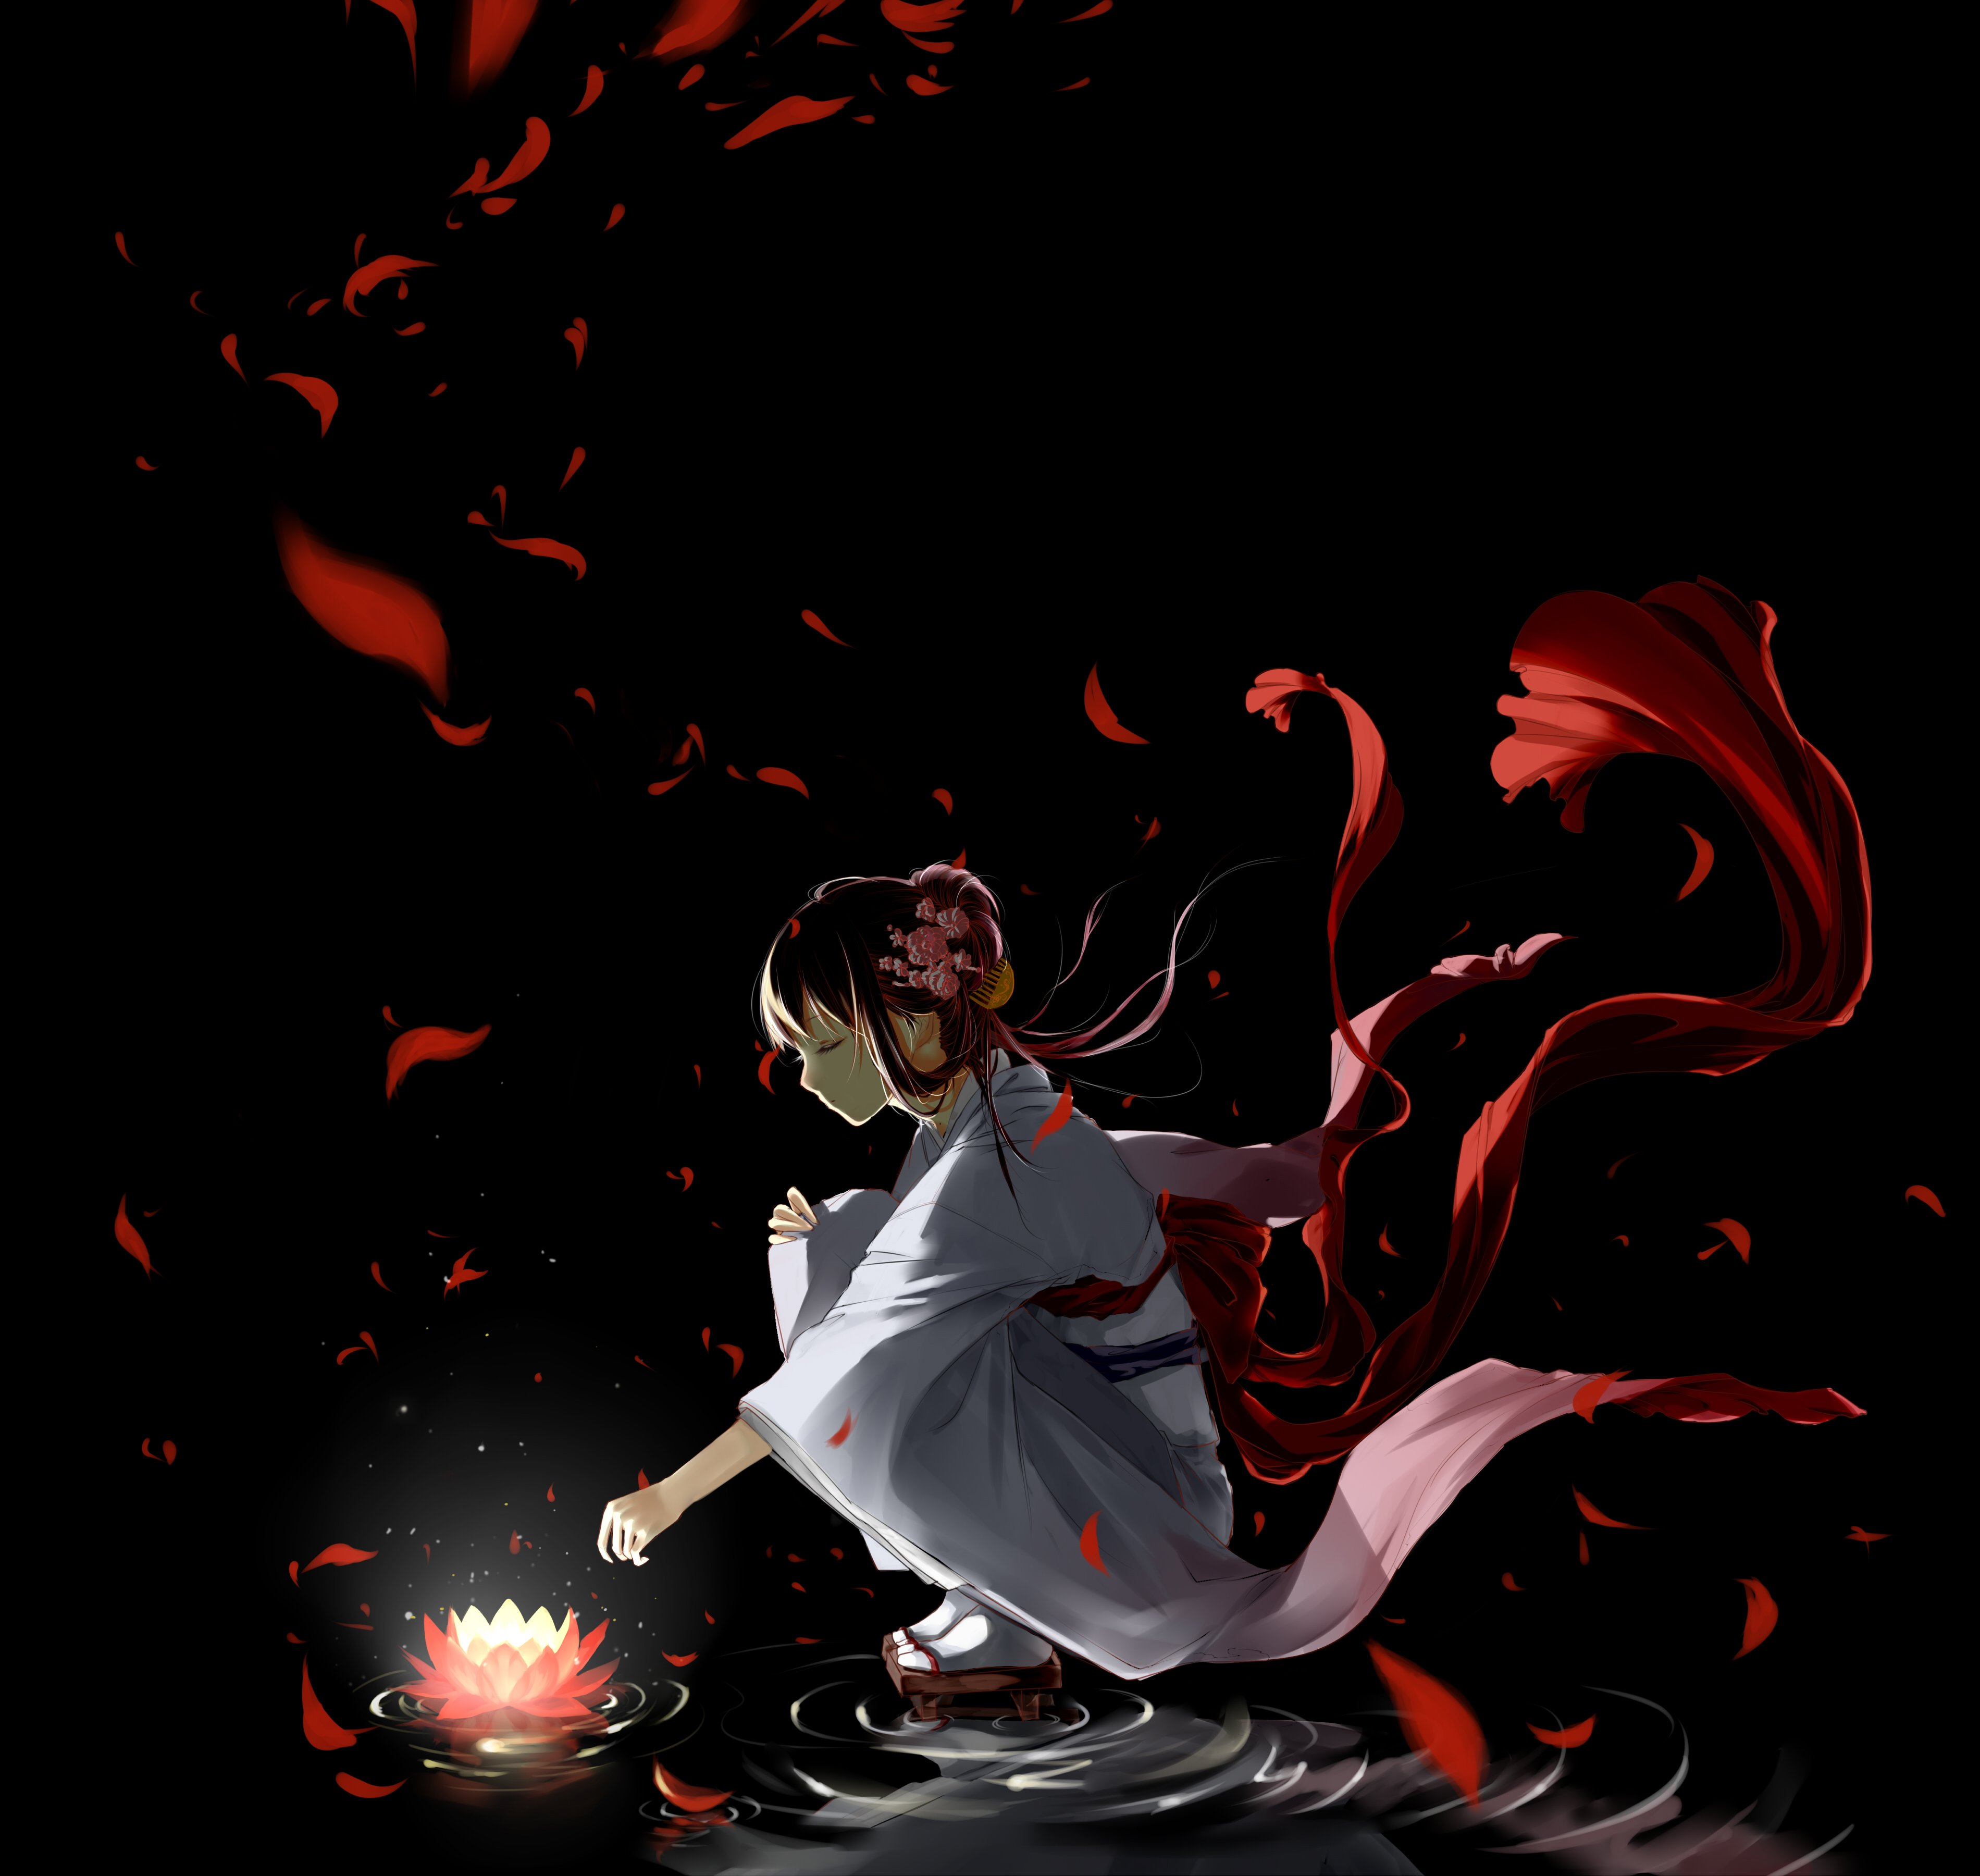 Night Lotus Girl Creepy Anime Wallpaper